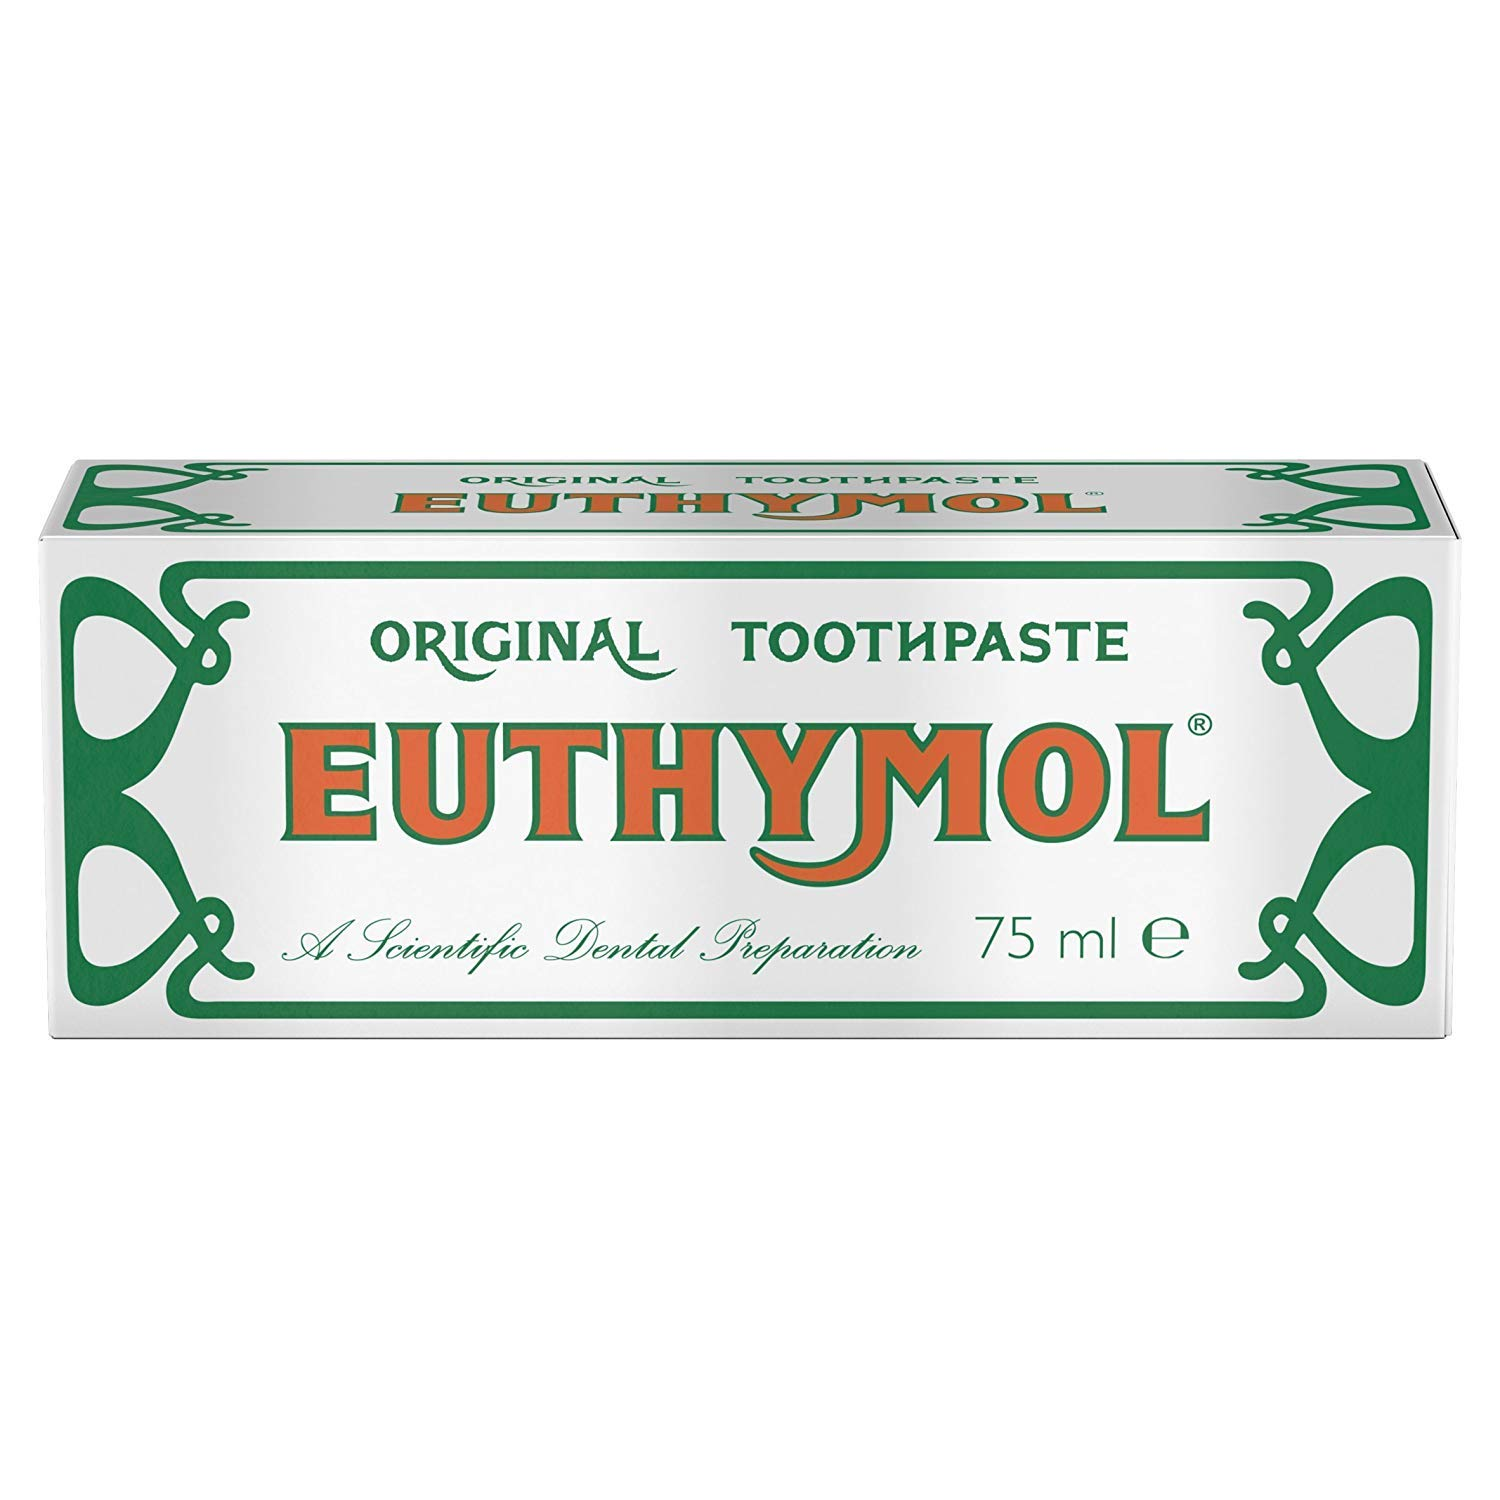 Euthymol Original Toothpaste Tube (75ml) - Pack of 2 by Euthymol